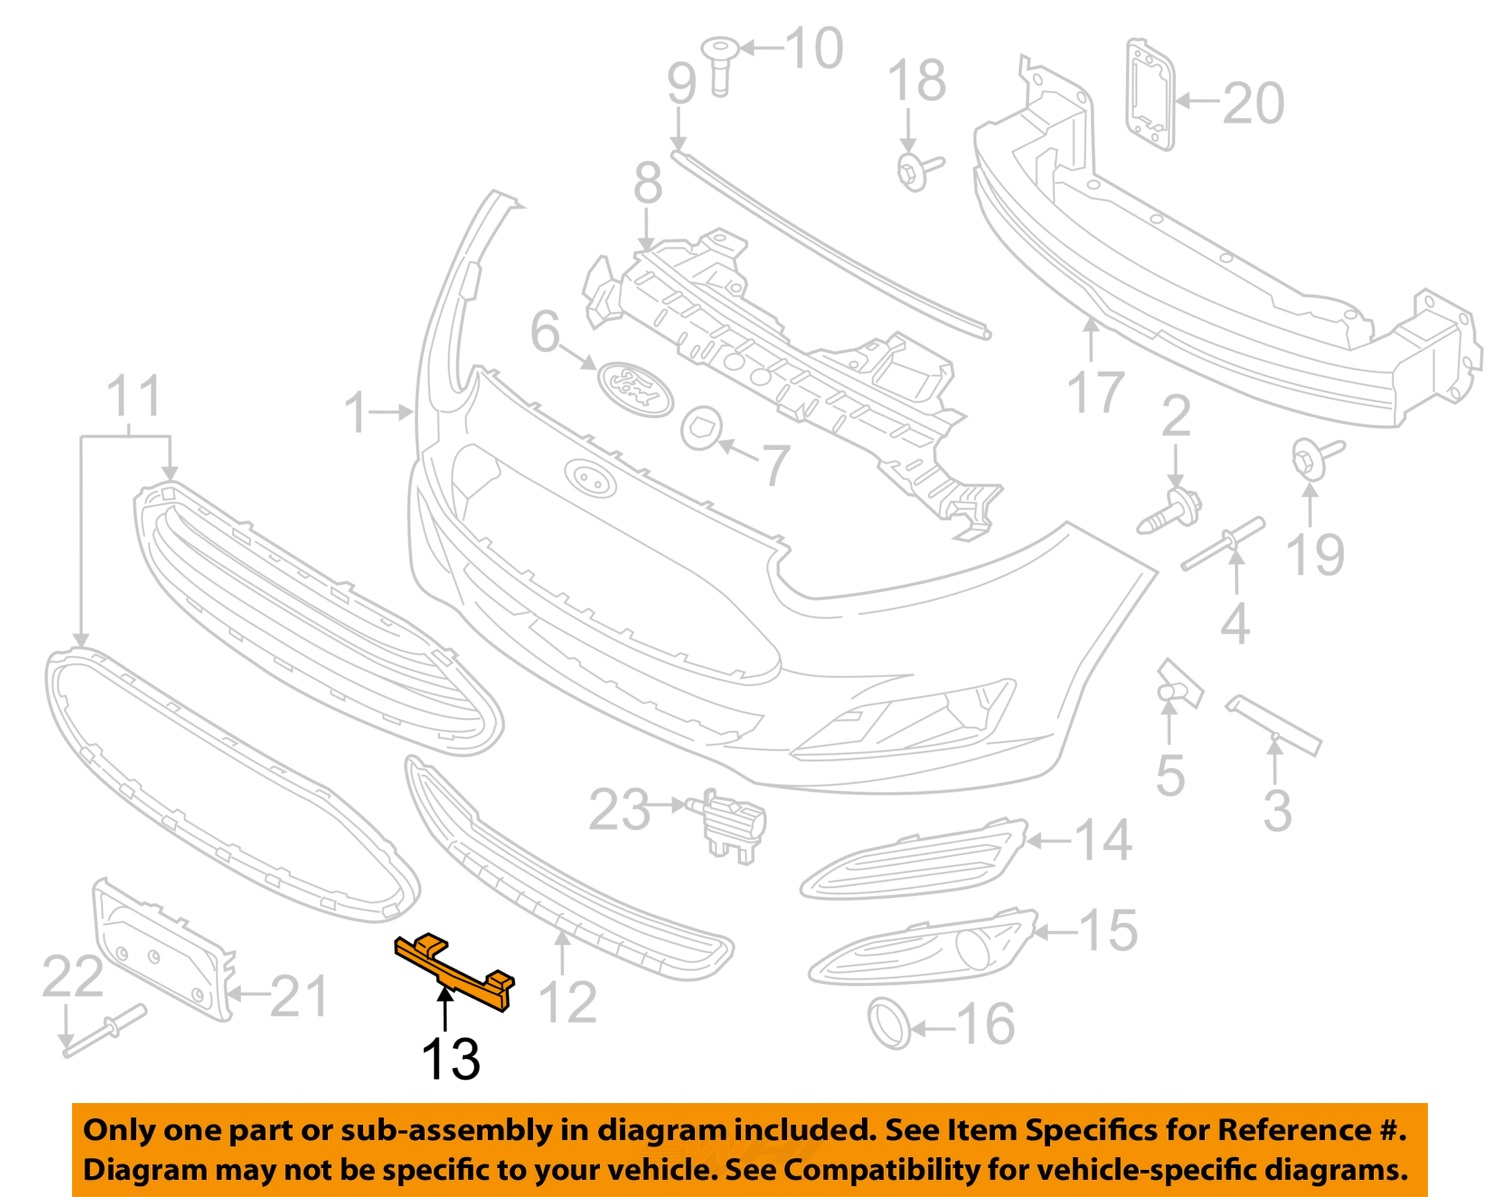 ford e series fuse box ford oem 14-16 fiesta front bumper-end cover right ... ford e series front bumper diagram